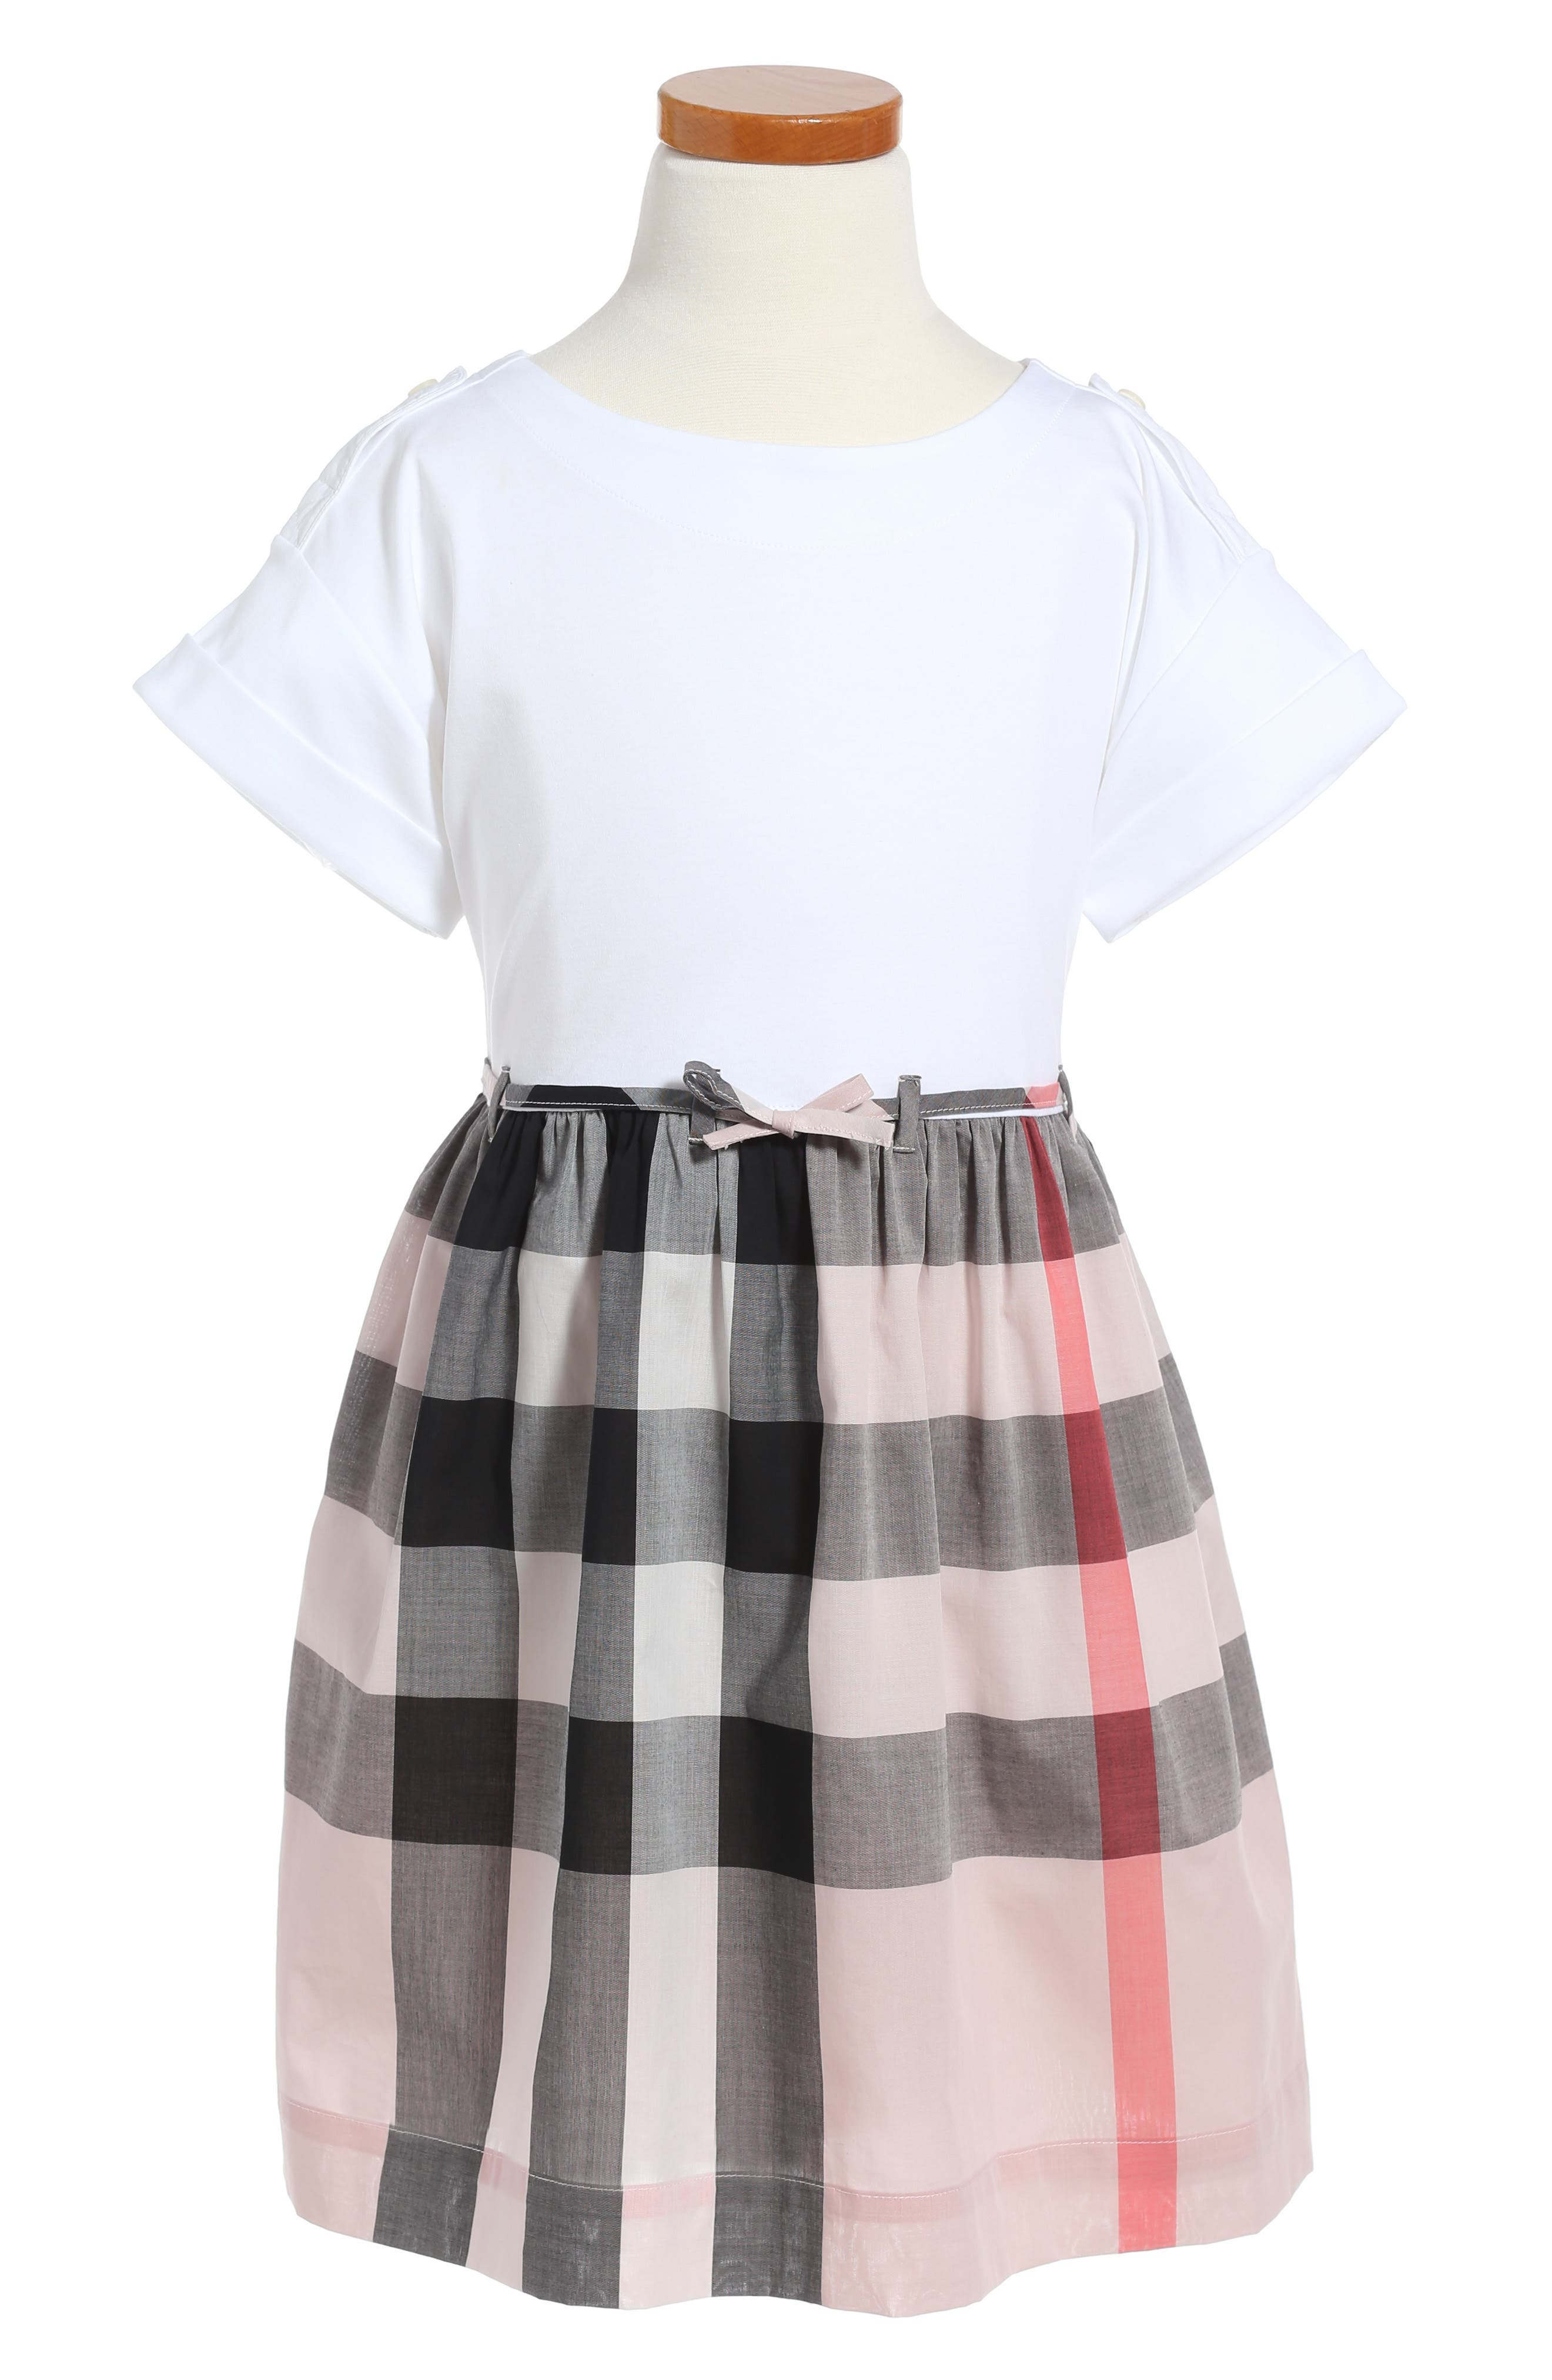 Main Image - Burberry Rhonda Dress (Little Girls & Big Girls)